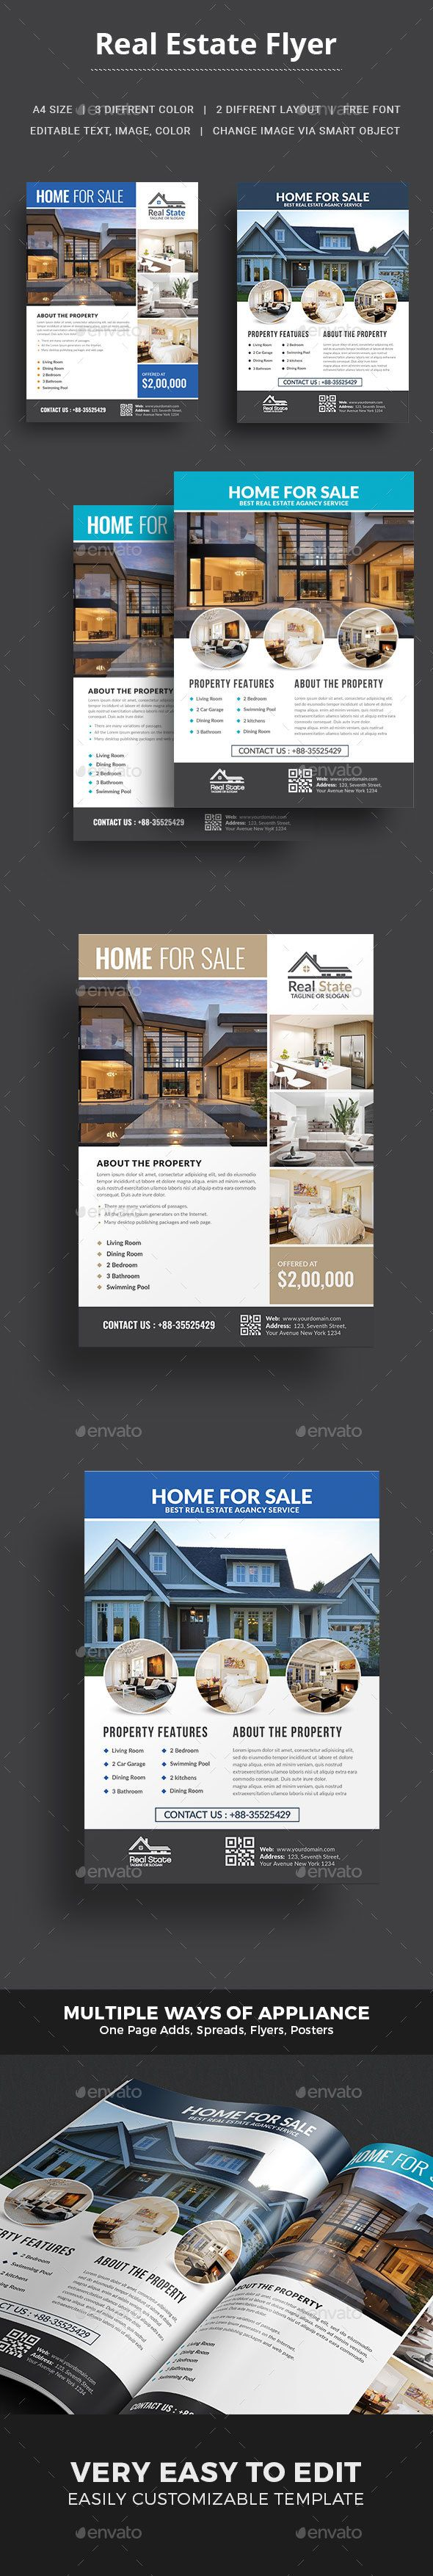 best ideas about advertising flyers photography real estate flyer template